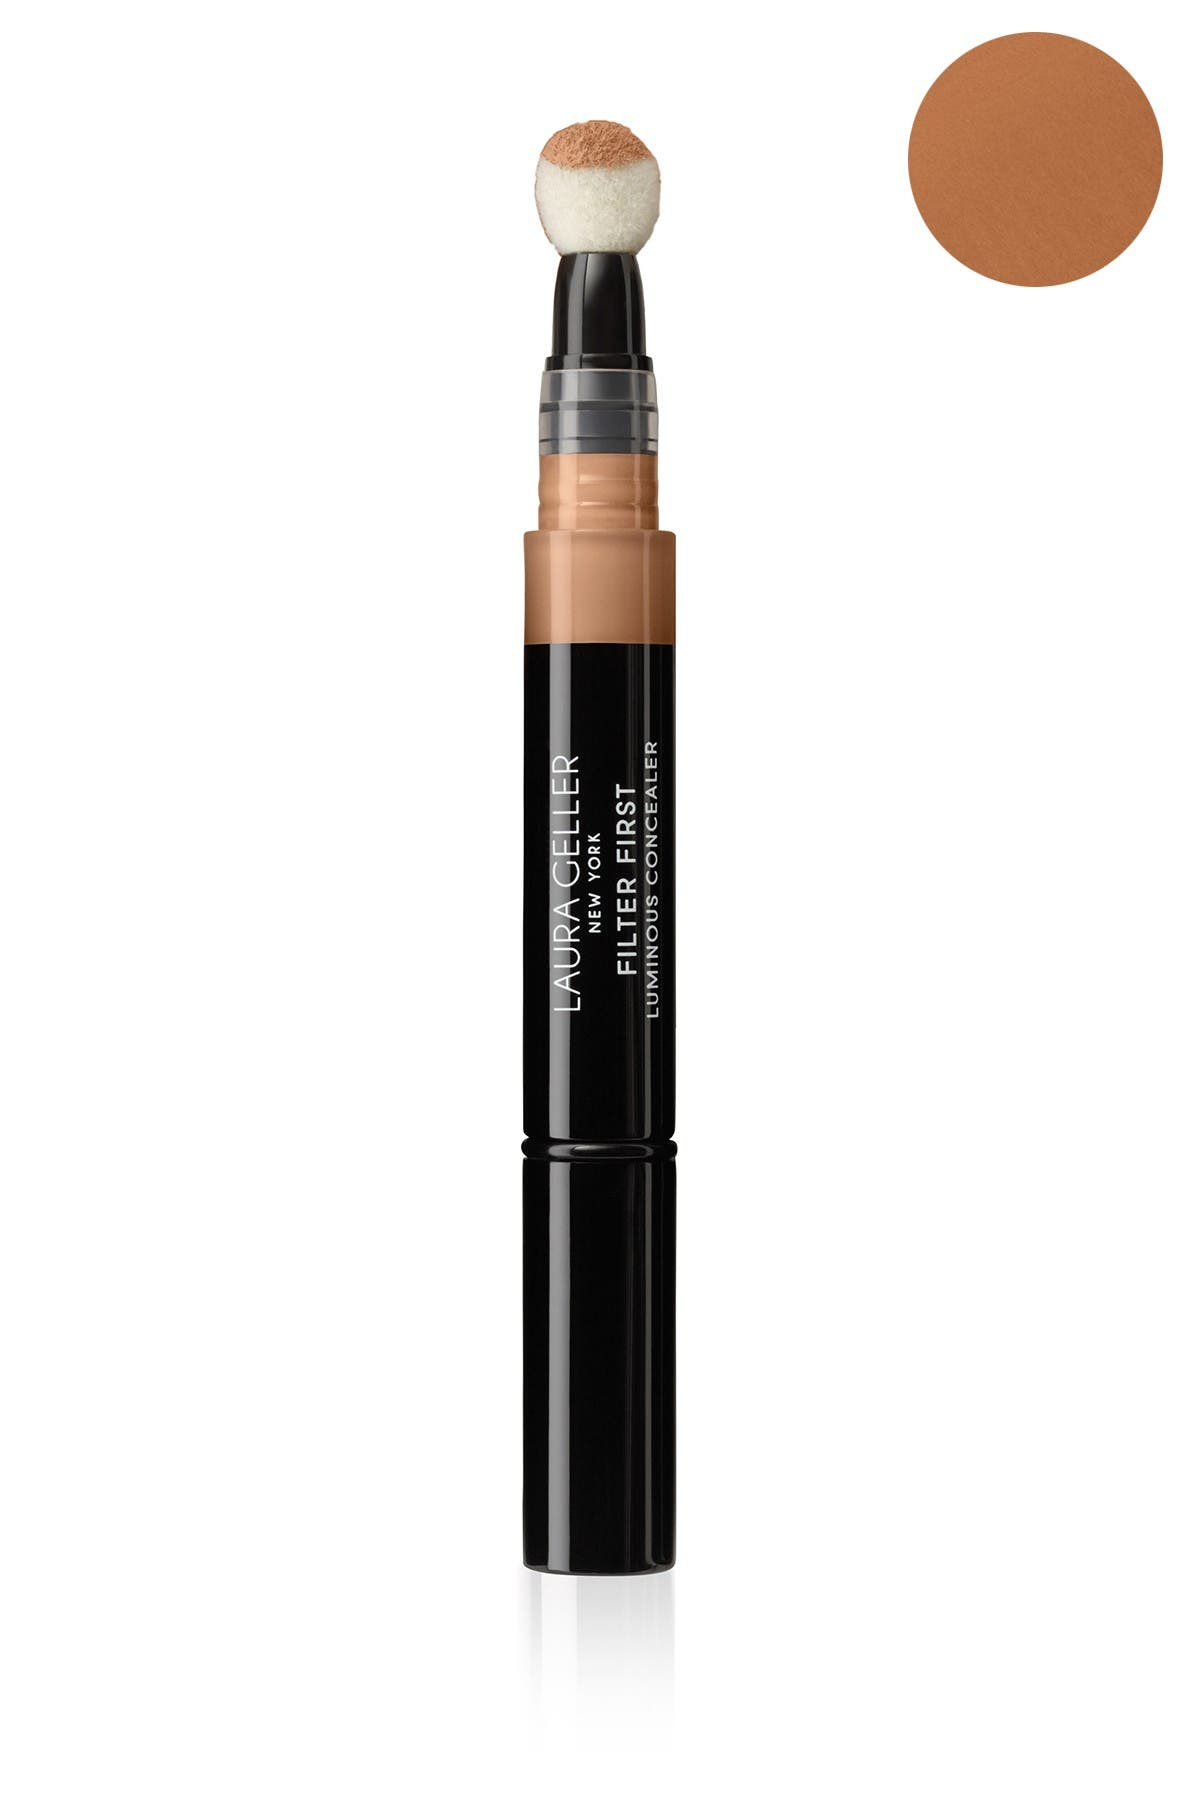 Image of Laura Geller New York Filter First Luminous Concealer - Deep Tan